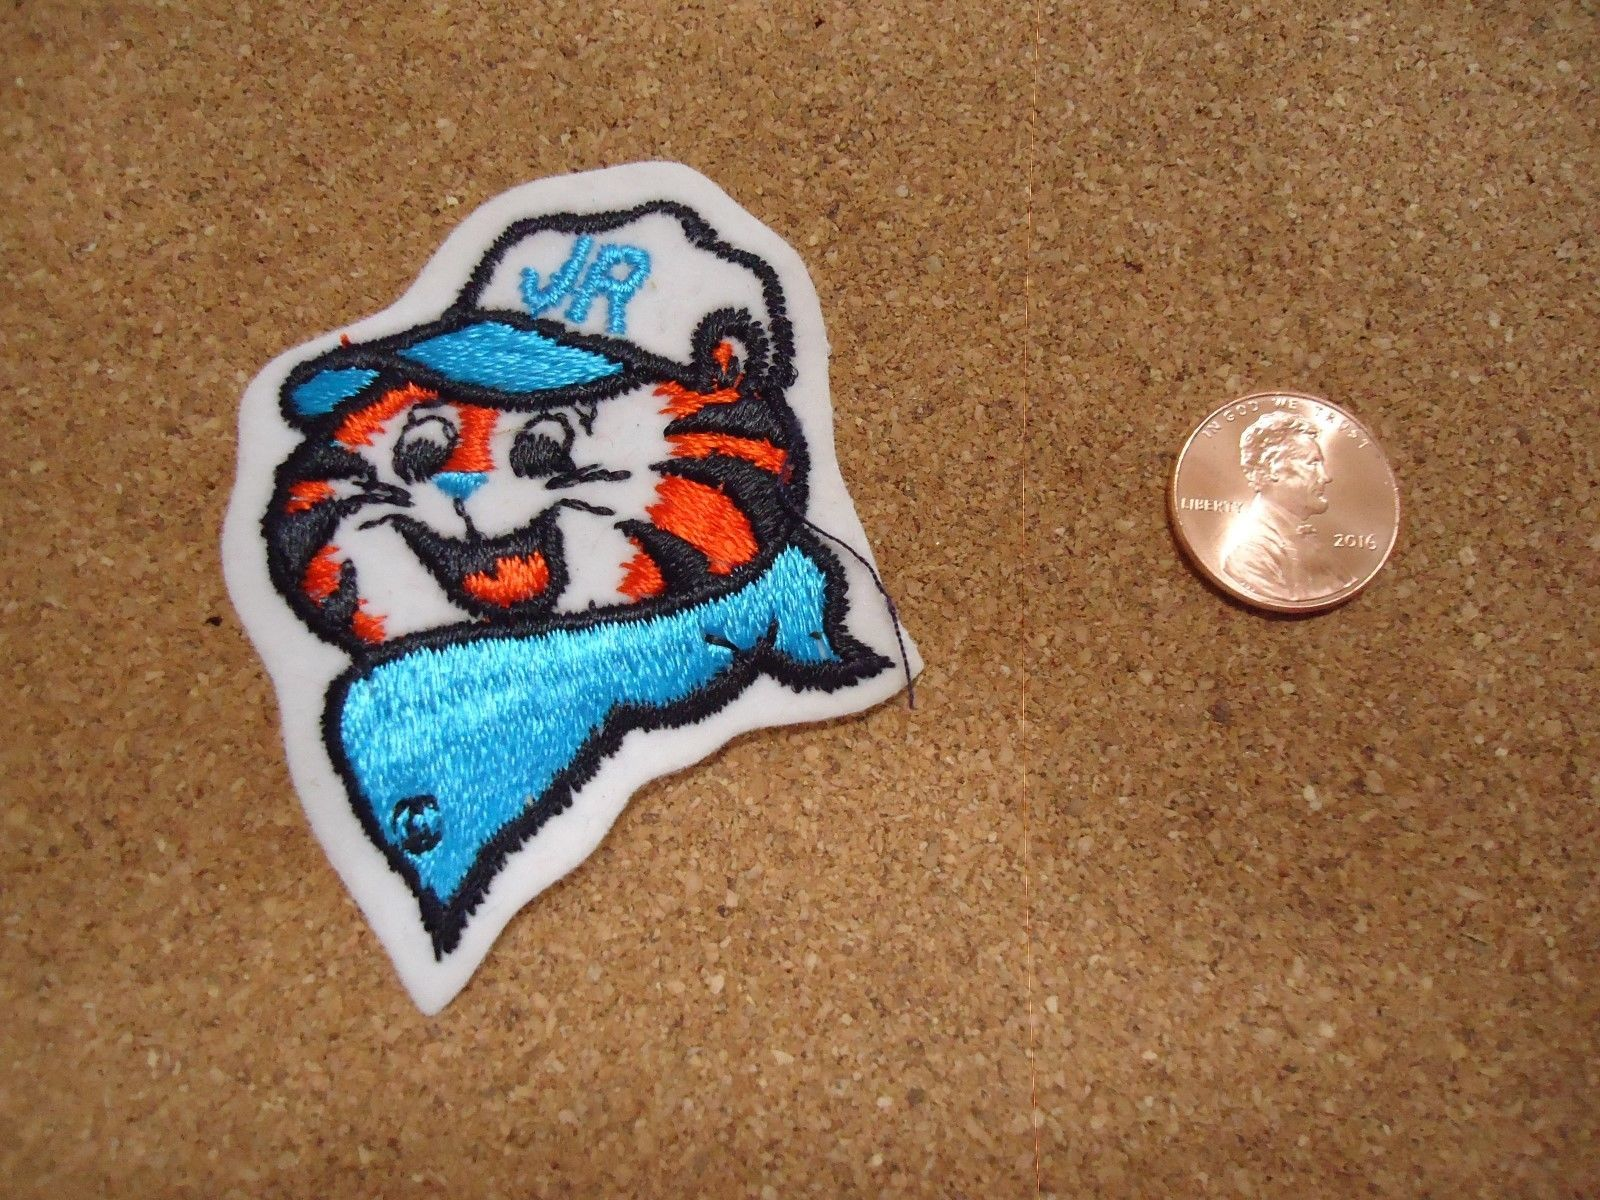 Vintage Tony the Tiger Jr Patch New Old Stock